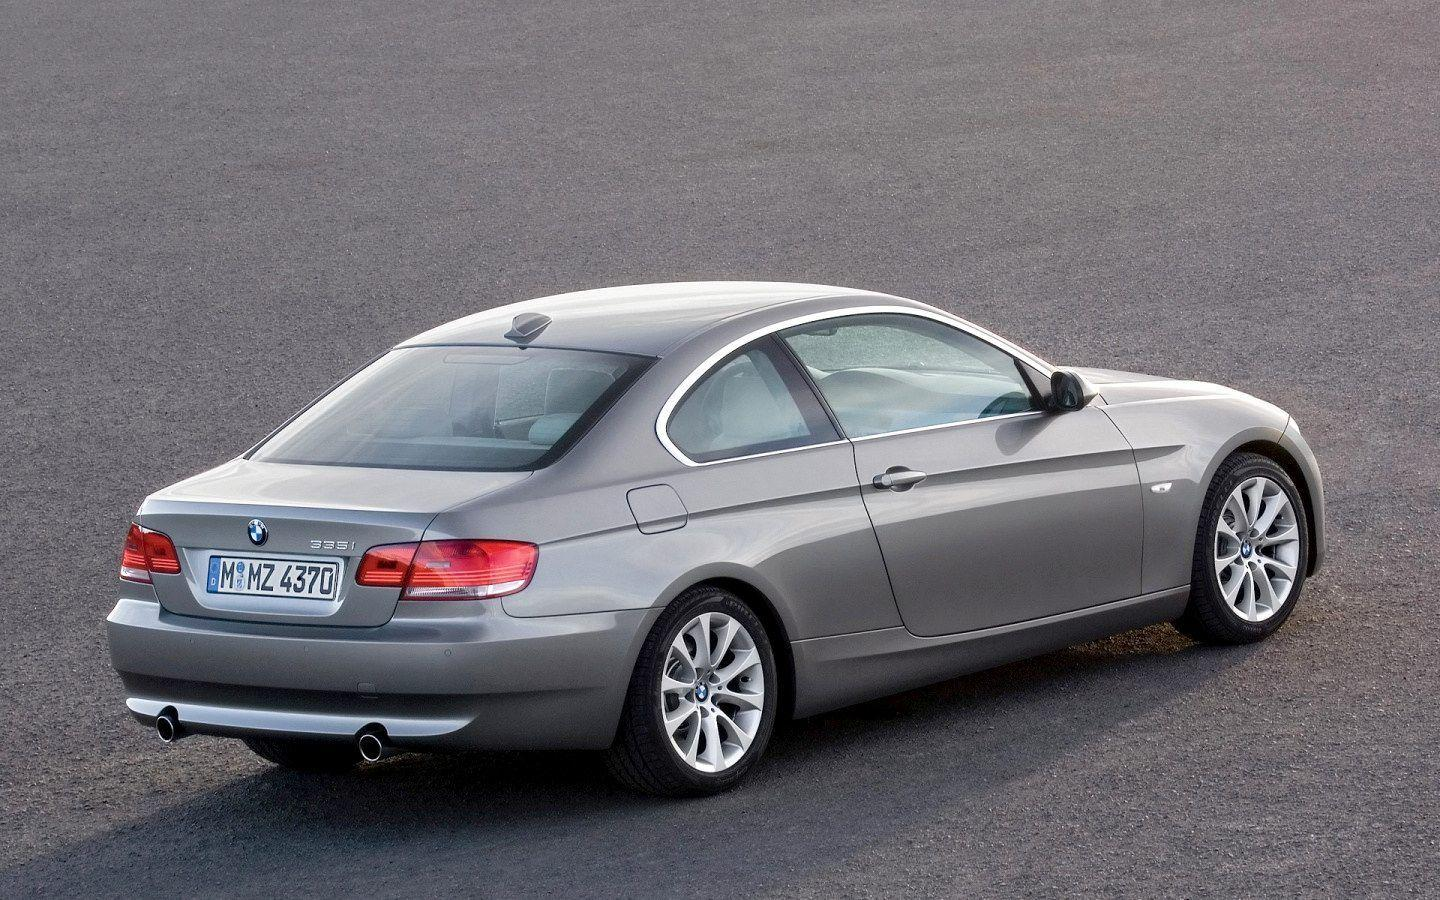 2007 BMW 335i Coupe Wallpaper 08 - 1440x900